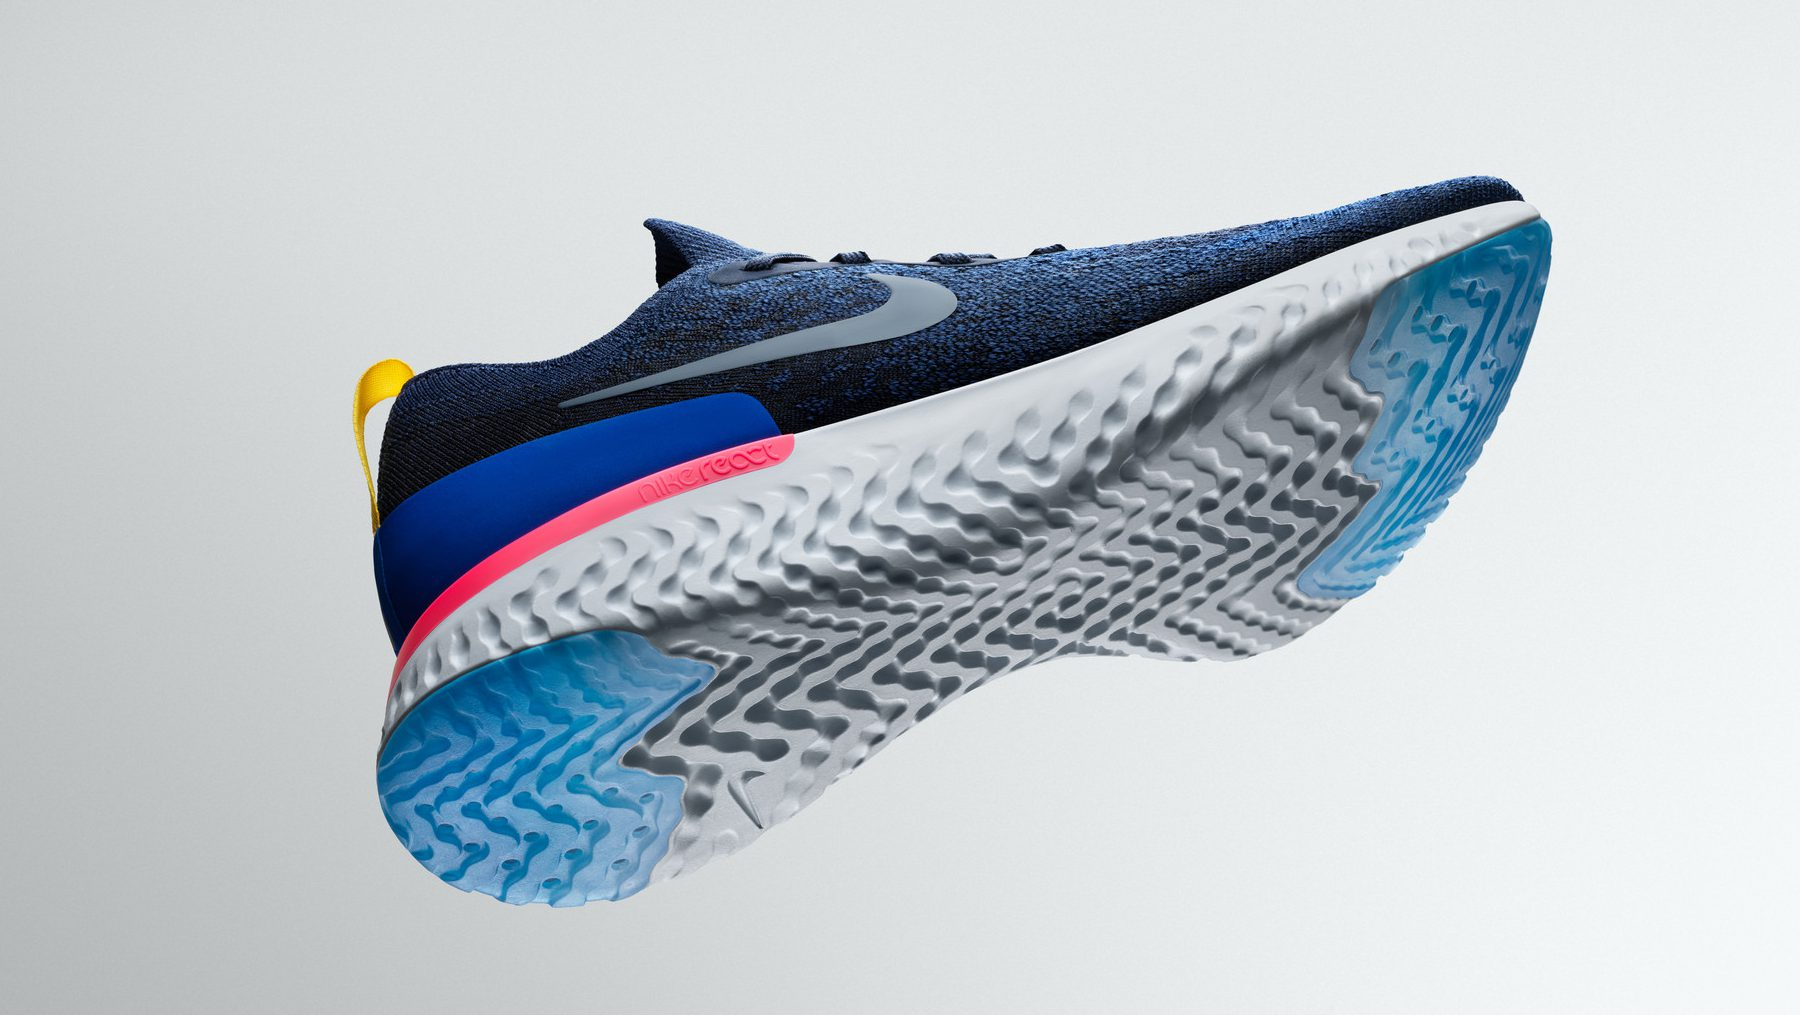 df20d12756 Nike Epic React Flyknit: Nike's next big thing in comfortable ...